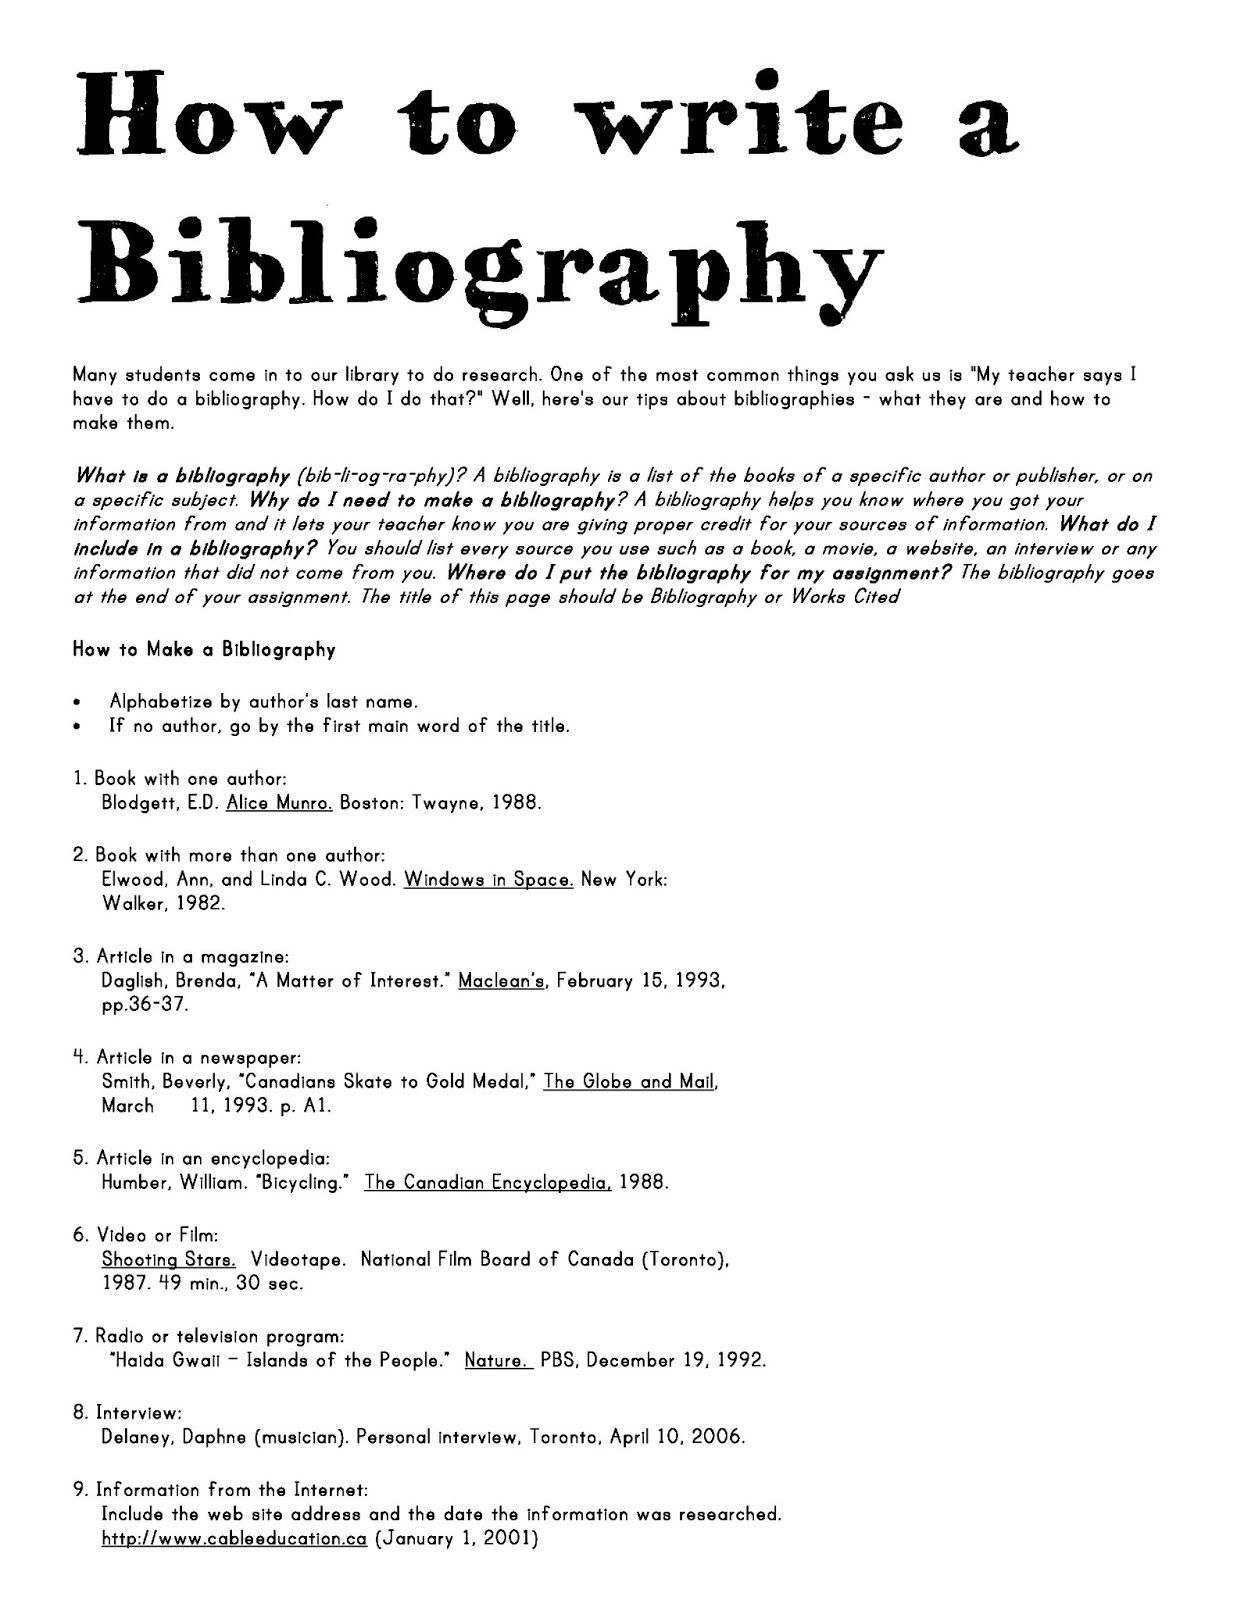 How To Write A Bibliography For A Paper Writing A Bibliography Citing Sources Teaching Writing